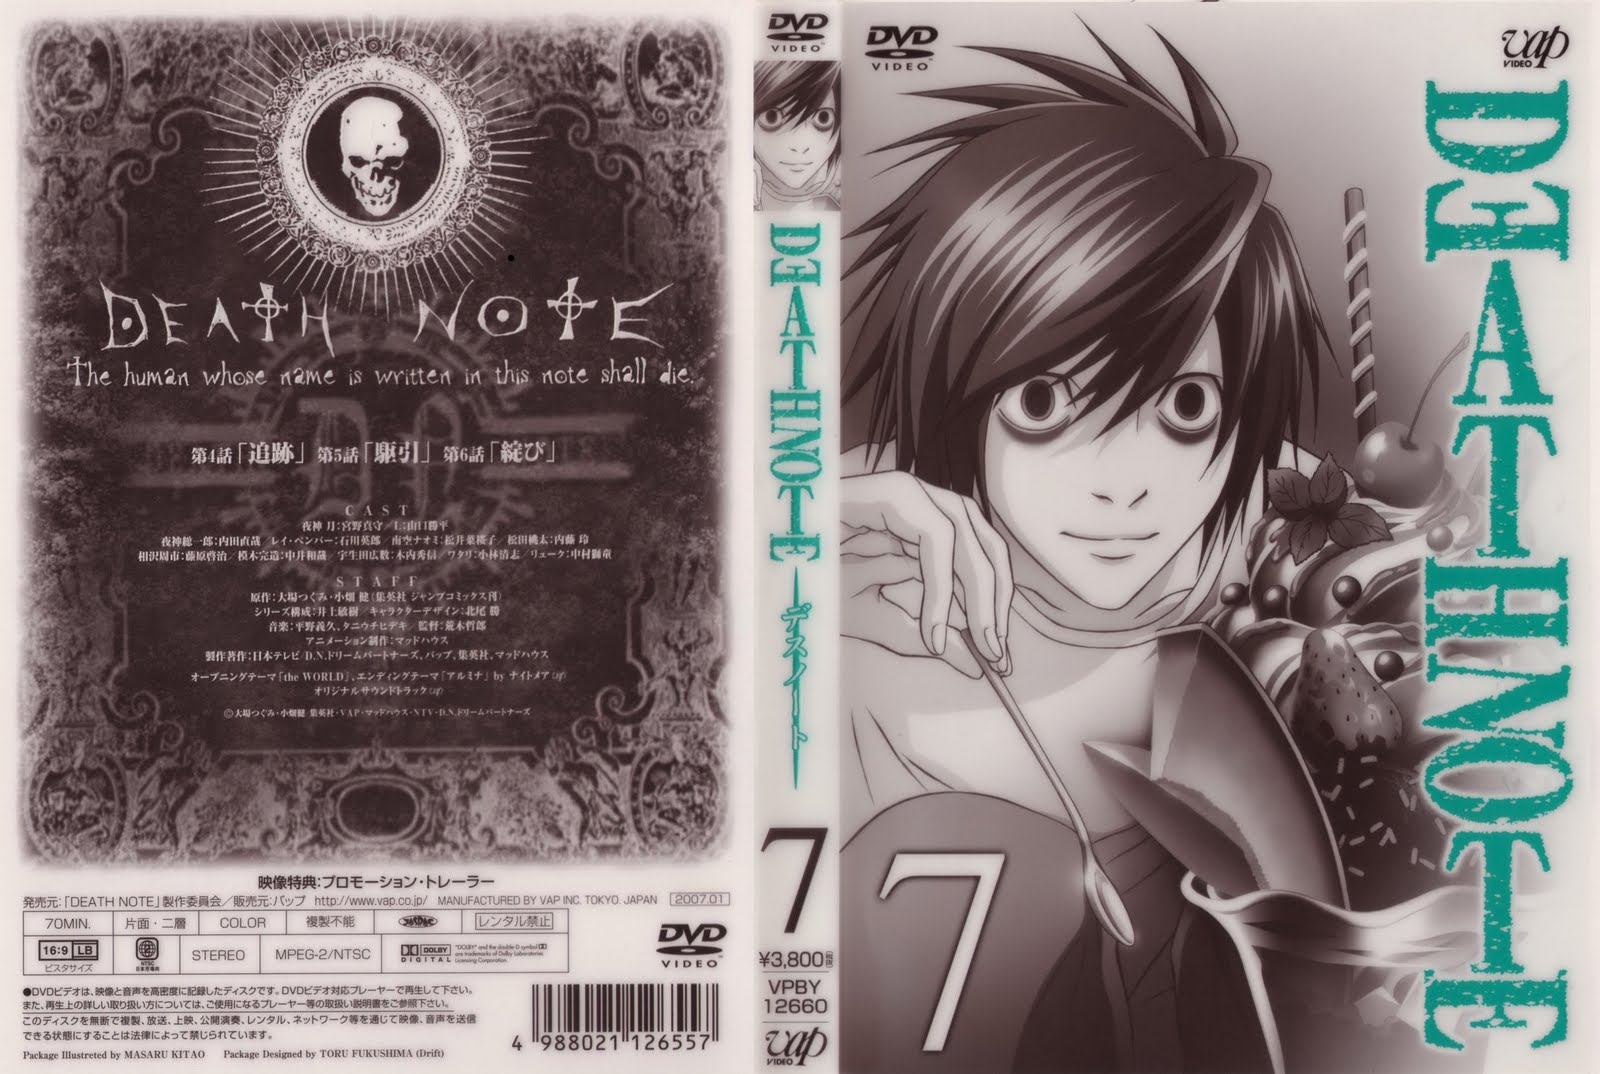 DVD COVERS AND LABELS: Death Note Vol 7